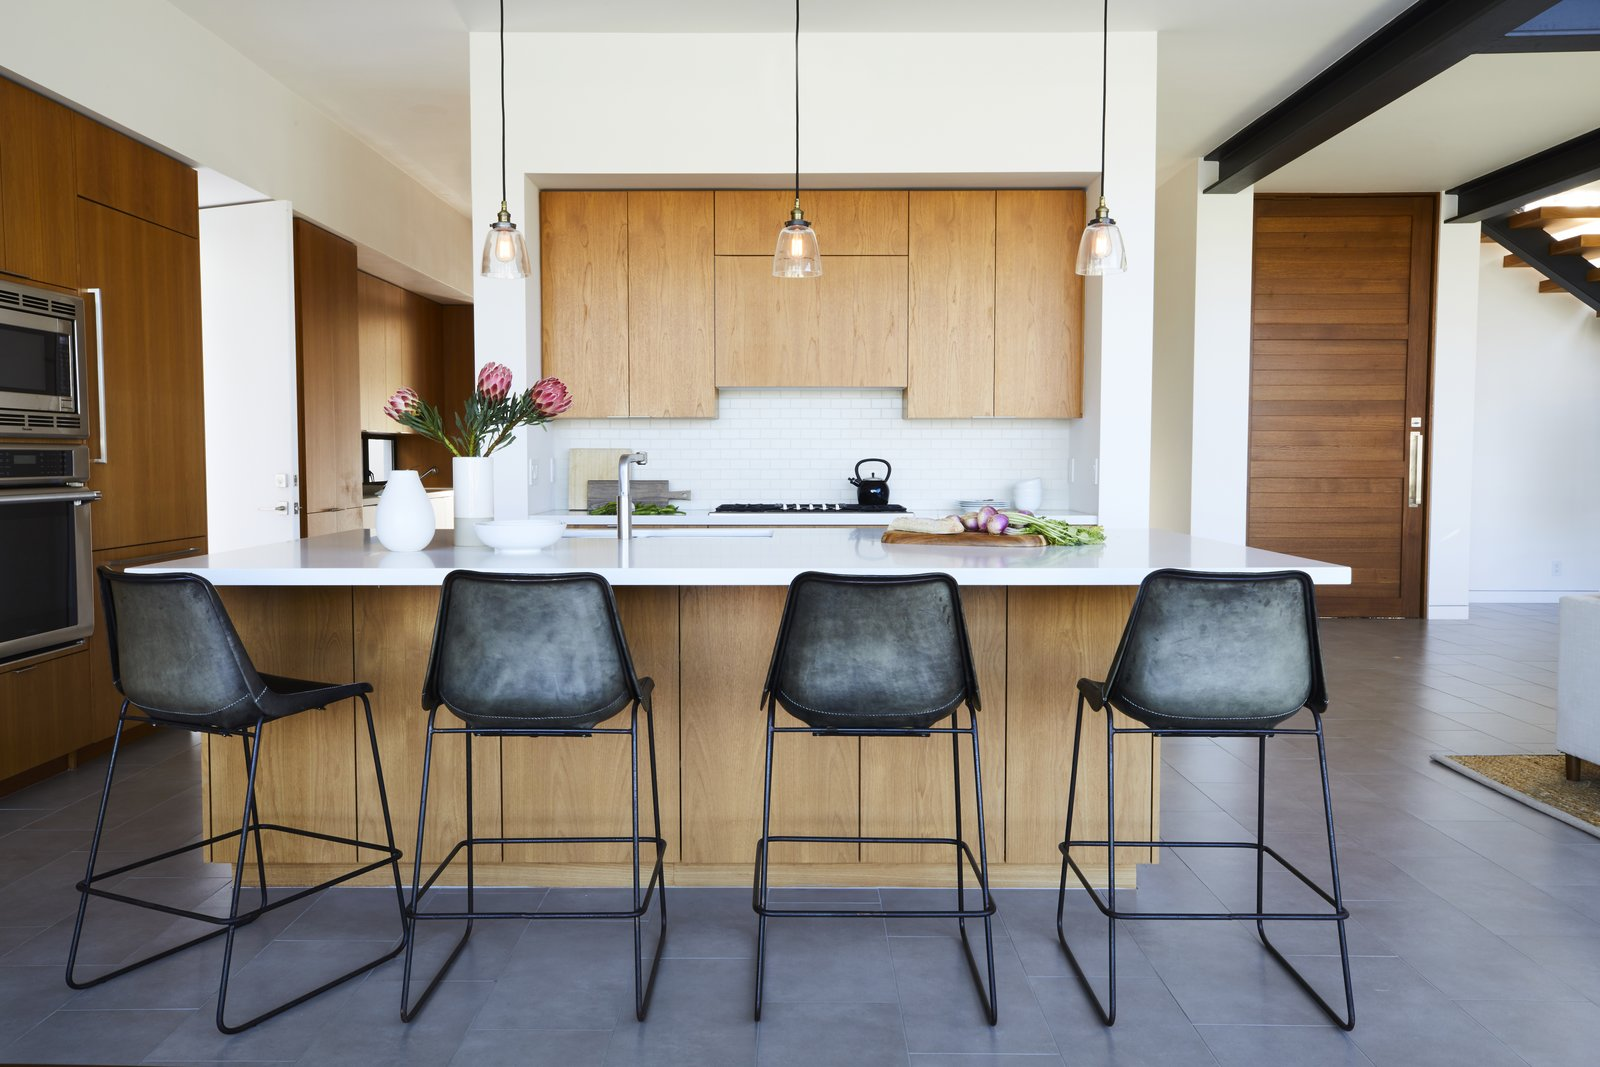 The industrial bar stools in the minimalist kitchen were purchased at ABC Home.